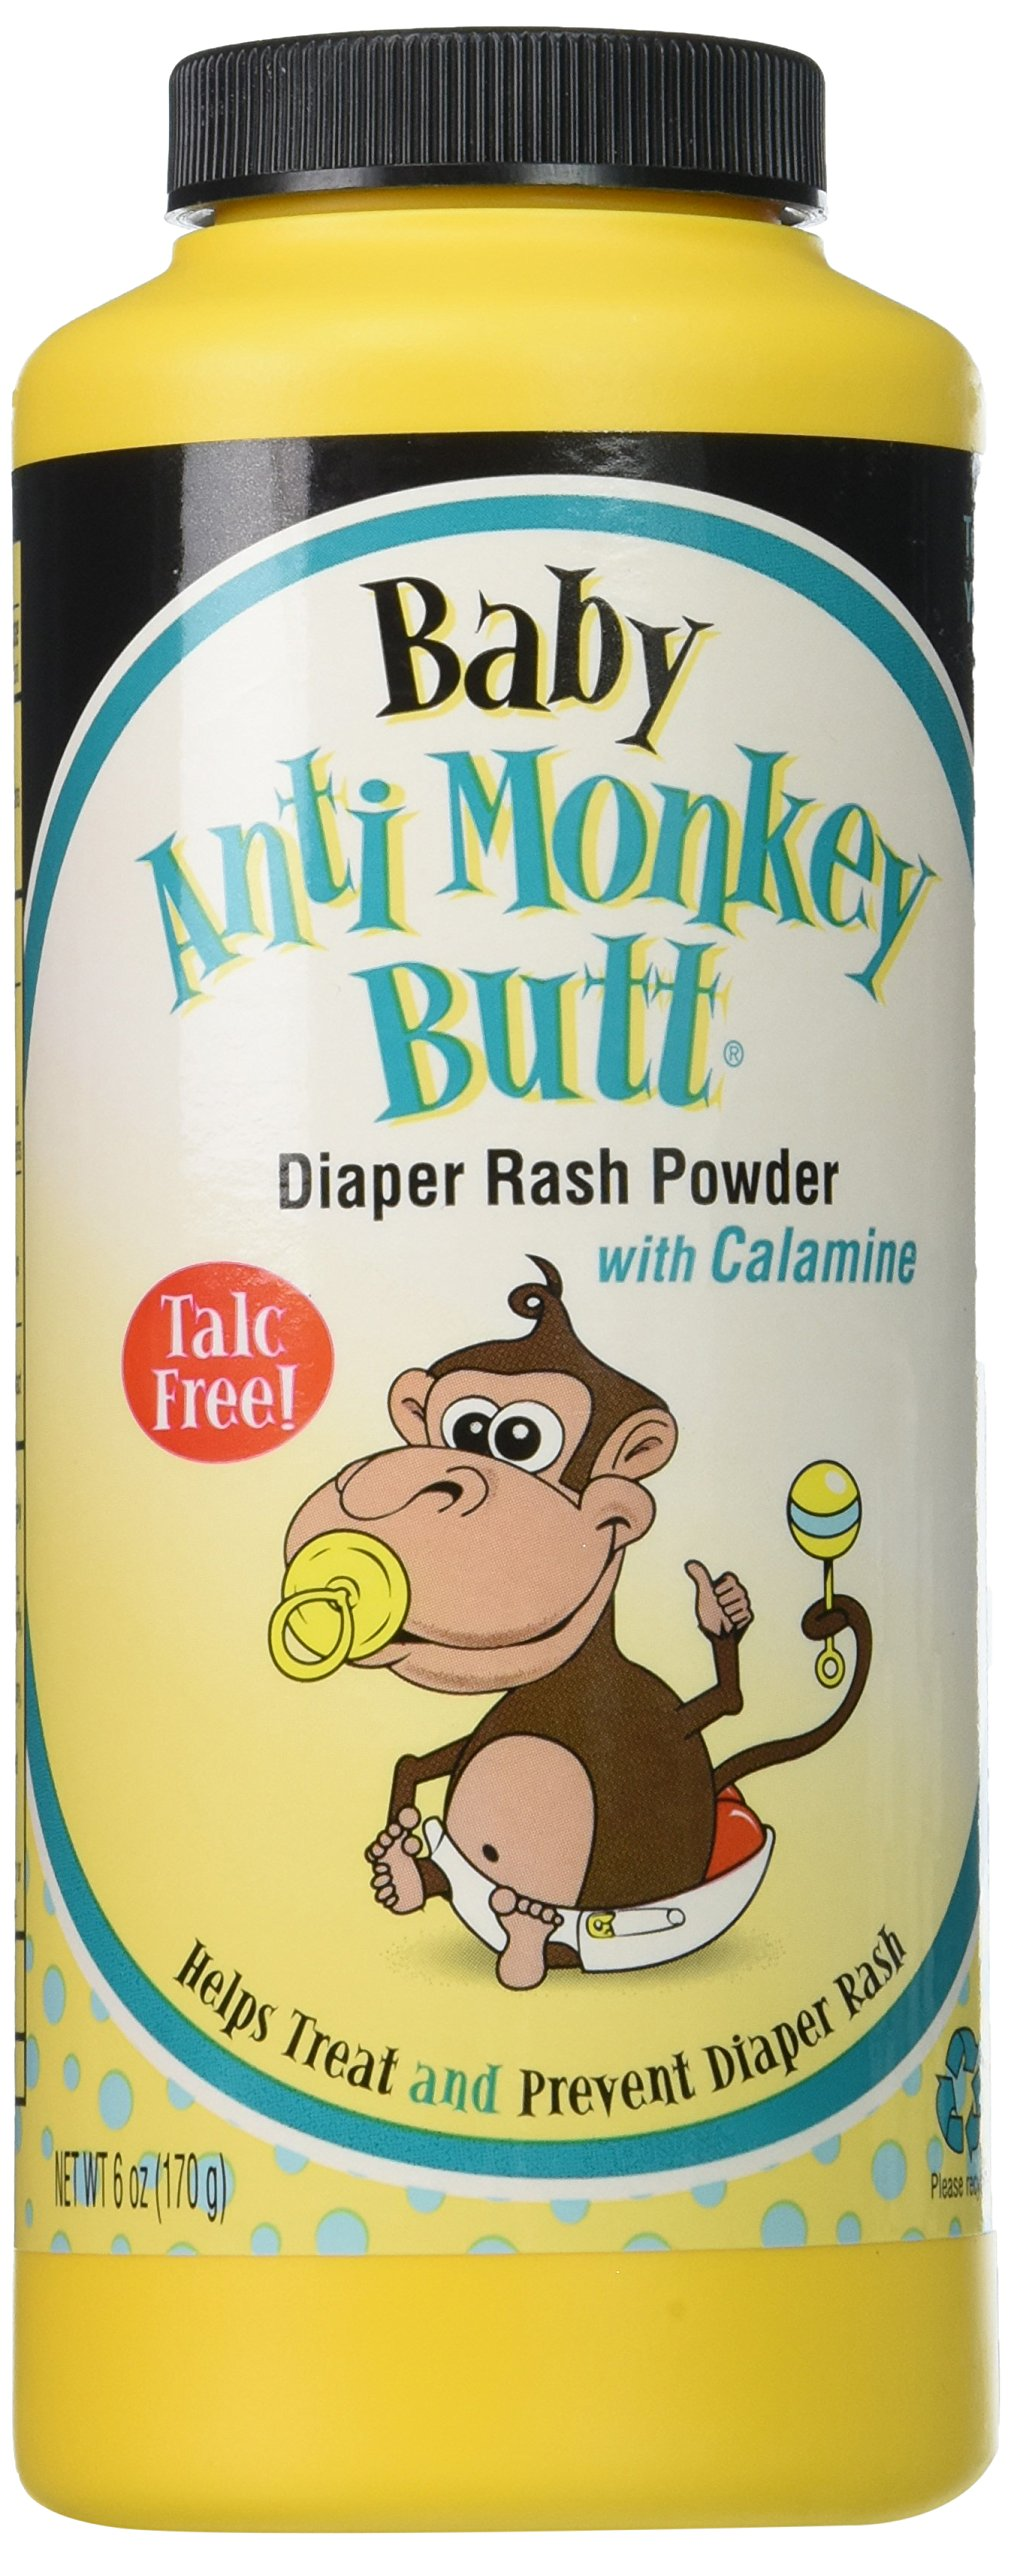 Baby Anti-Monkey Butt Diaper Rash Powder, 6oz. Bottle - 3 Pack by Anti Monkey Butt